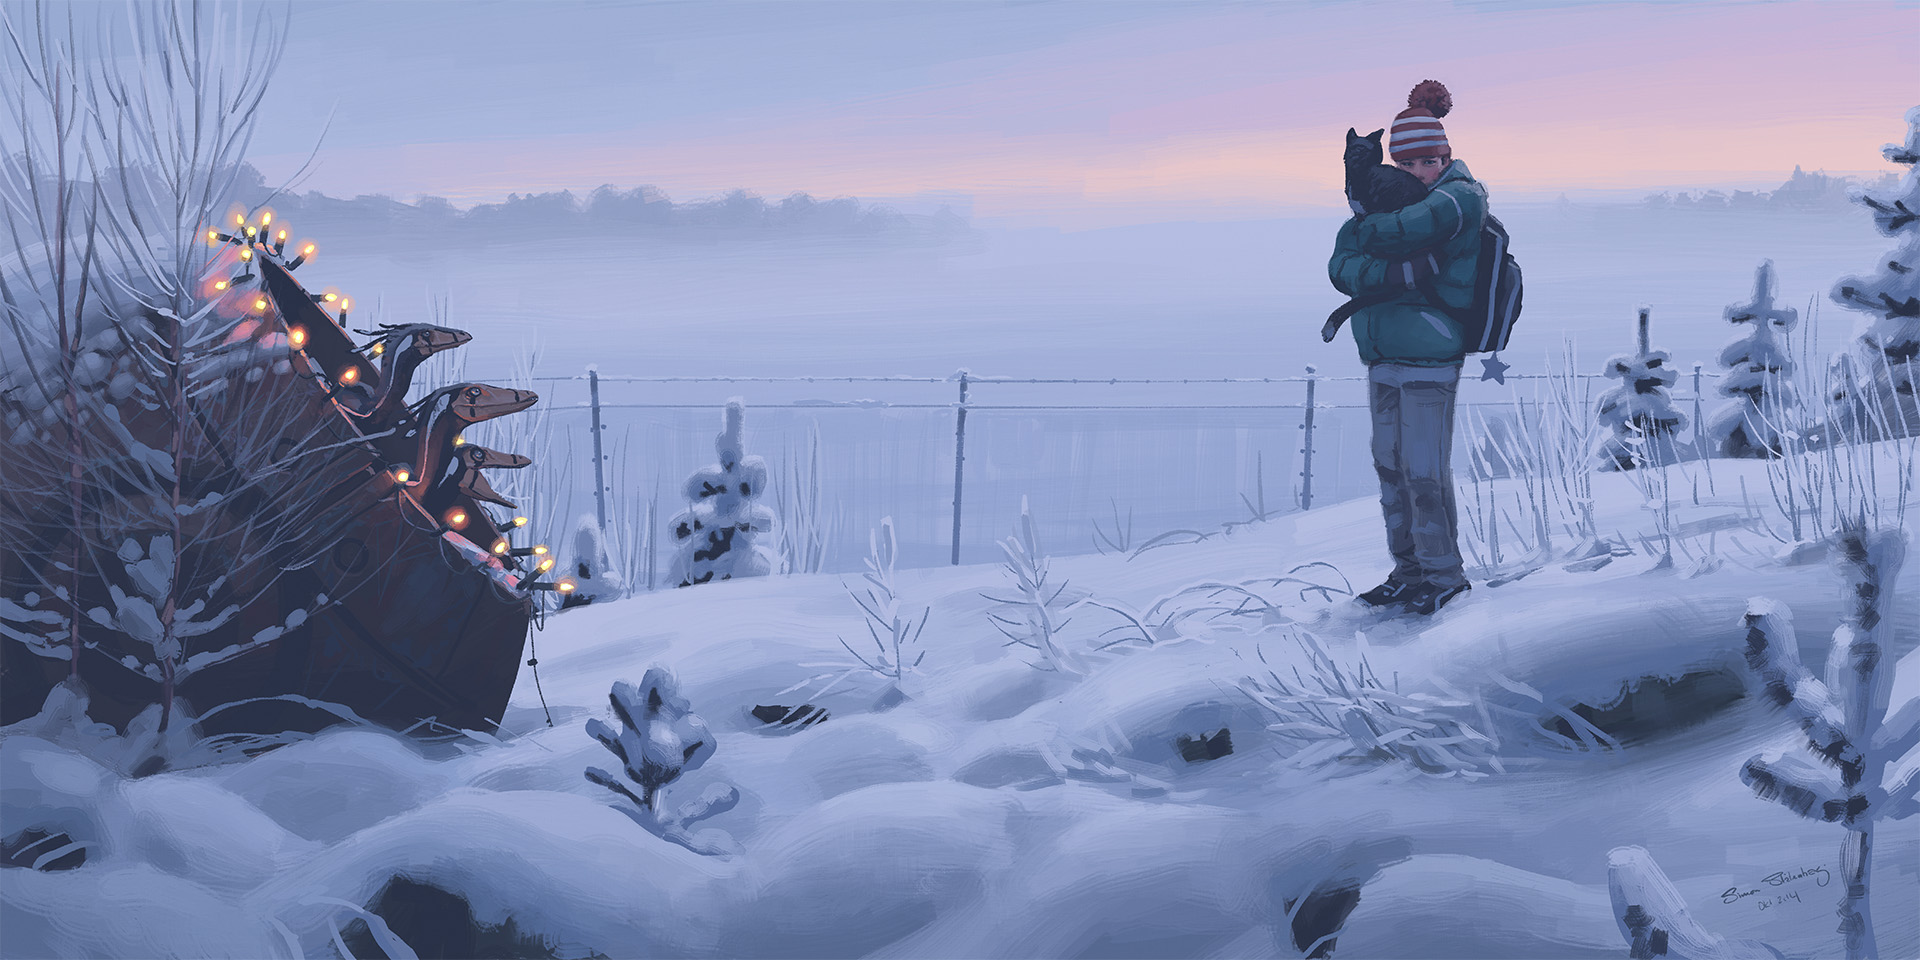 simon_stalenhag_digital_painting1